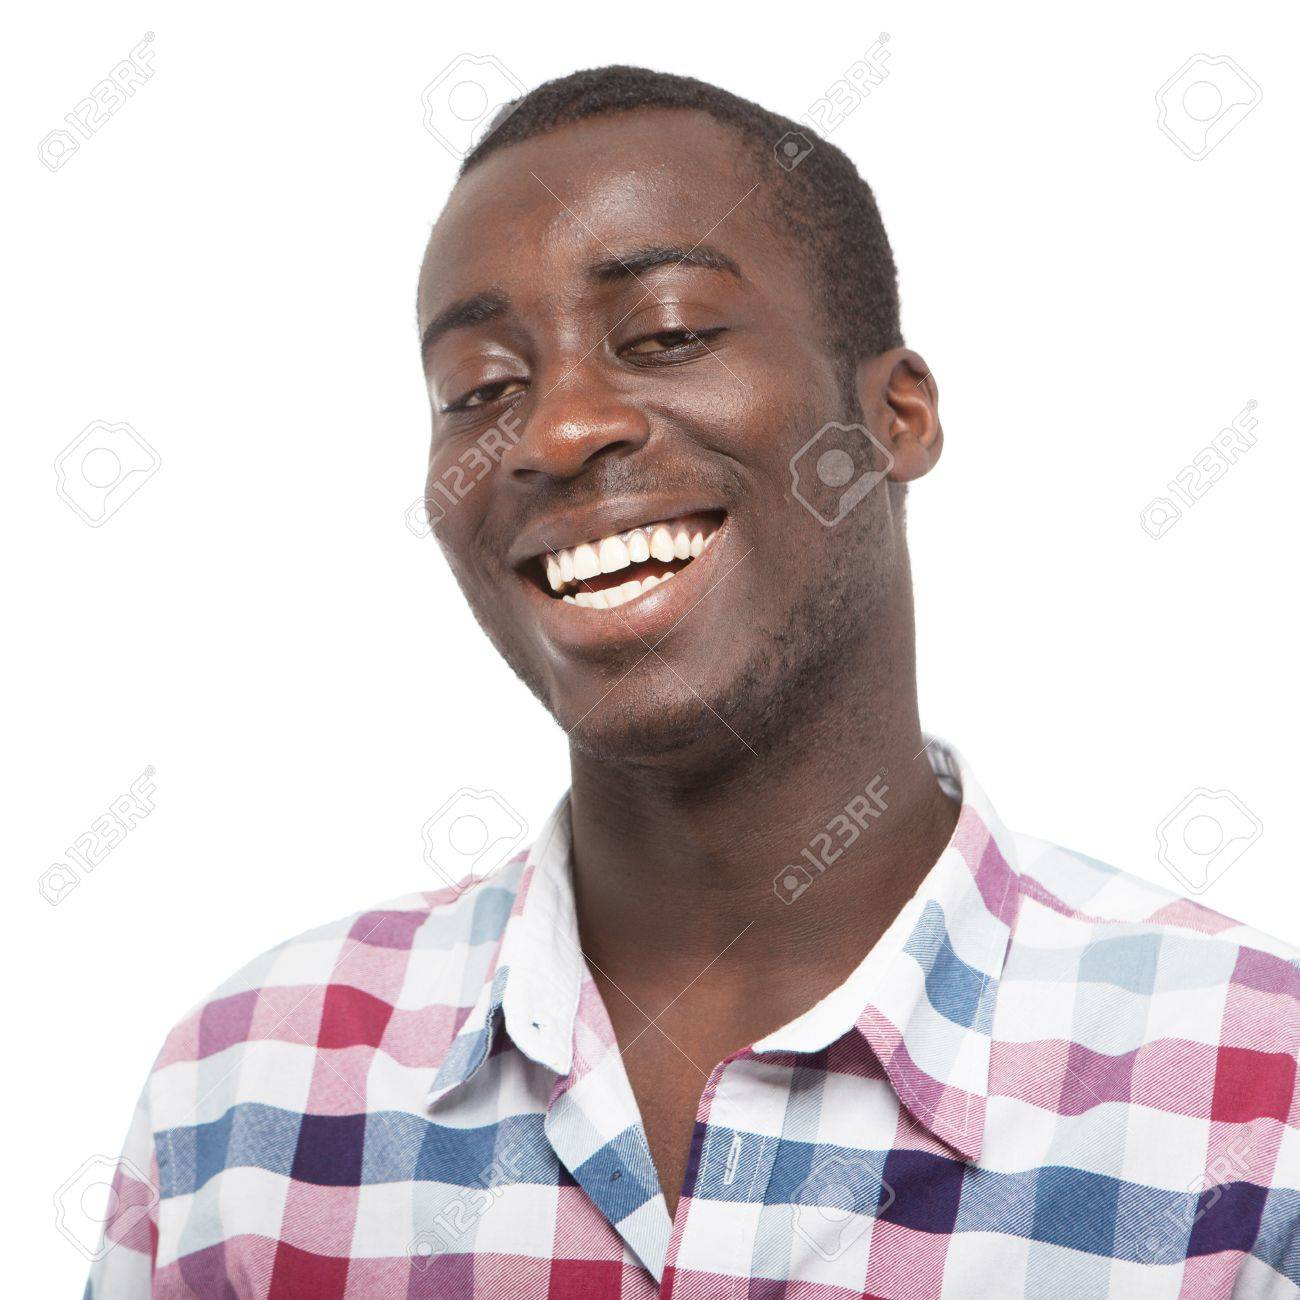 Young black man with a nice smile over white background. Stock Photo - 13932925